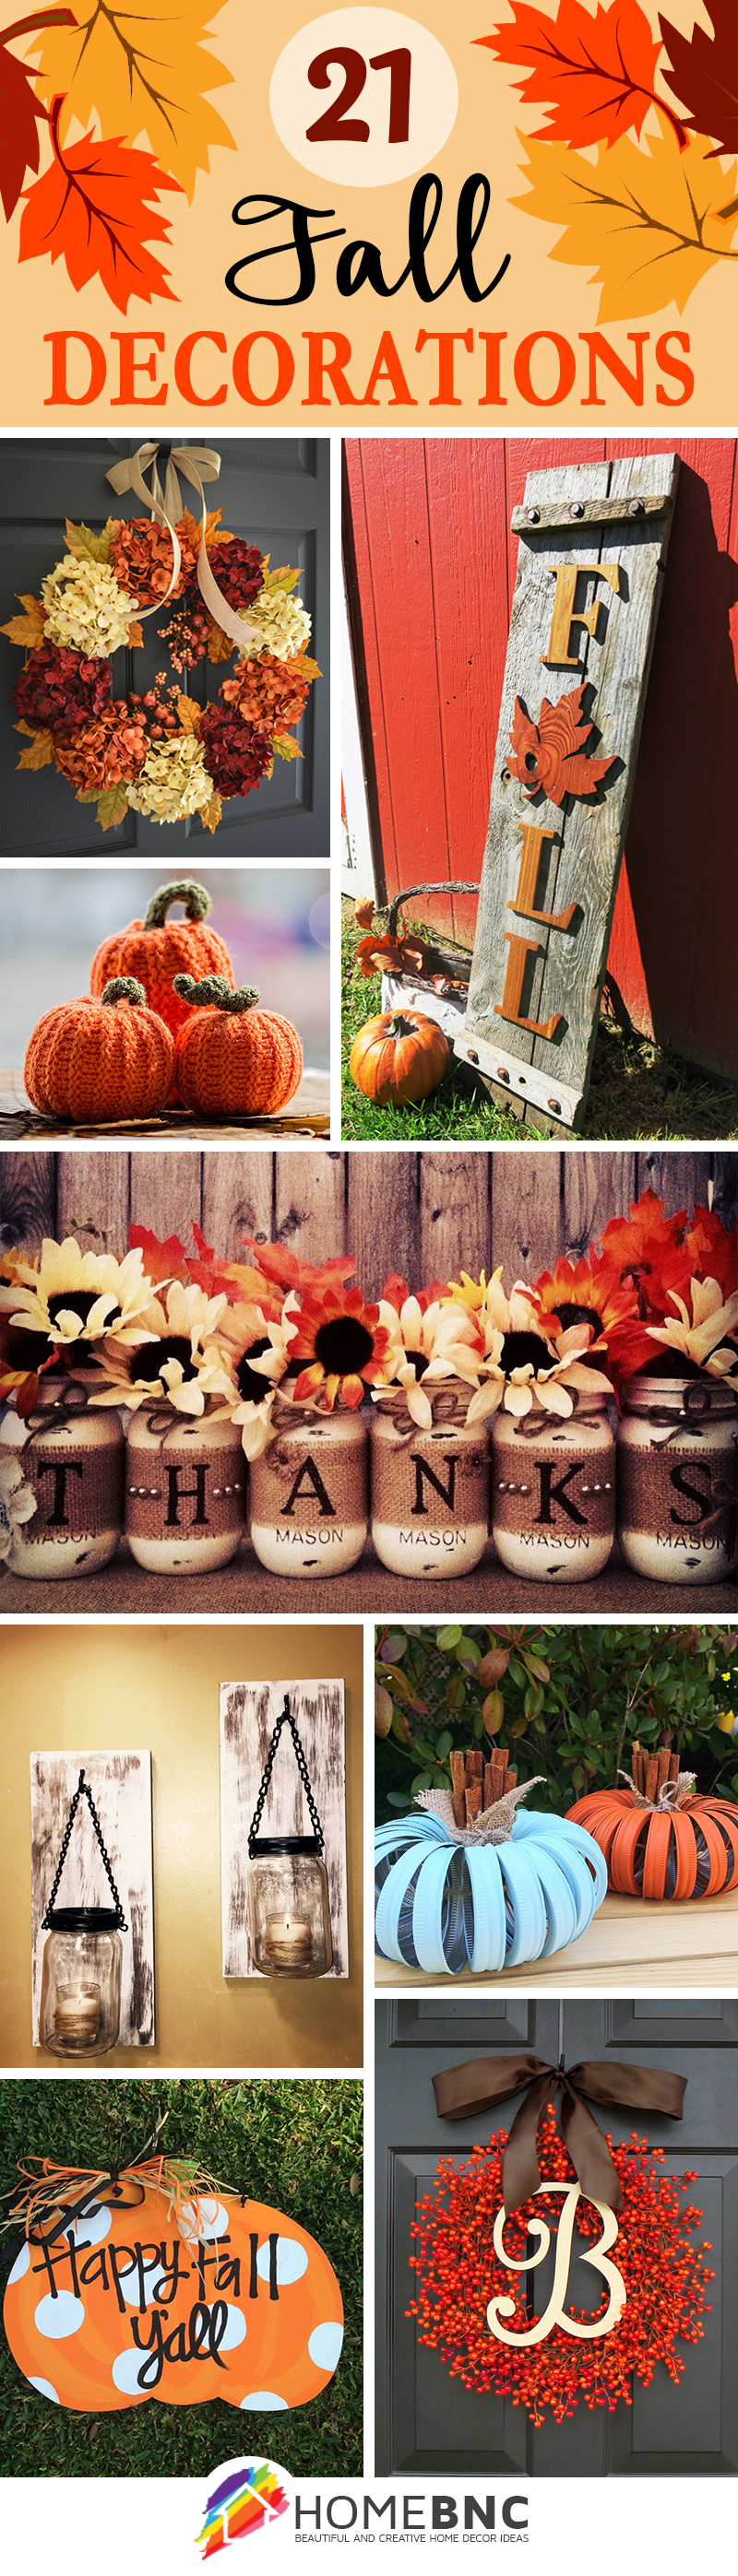 21 fabulous etsy fall decorations to buy in 2017 for Top selling crafts 2017